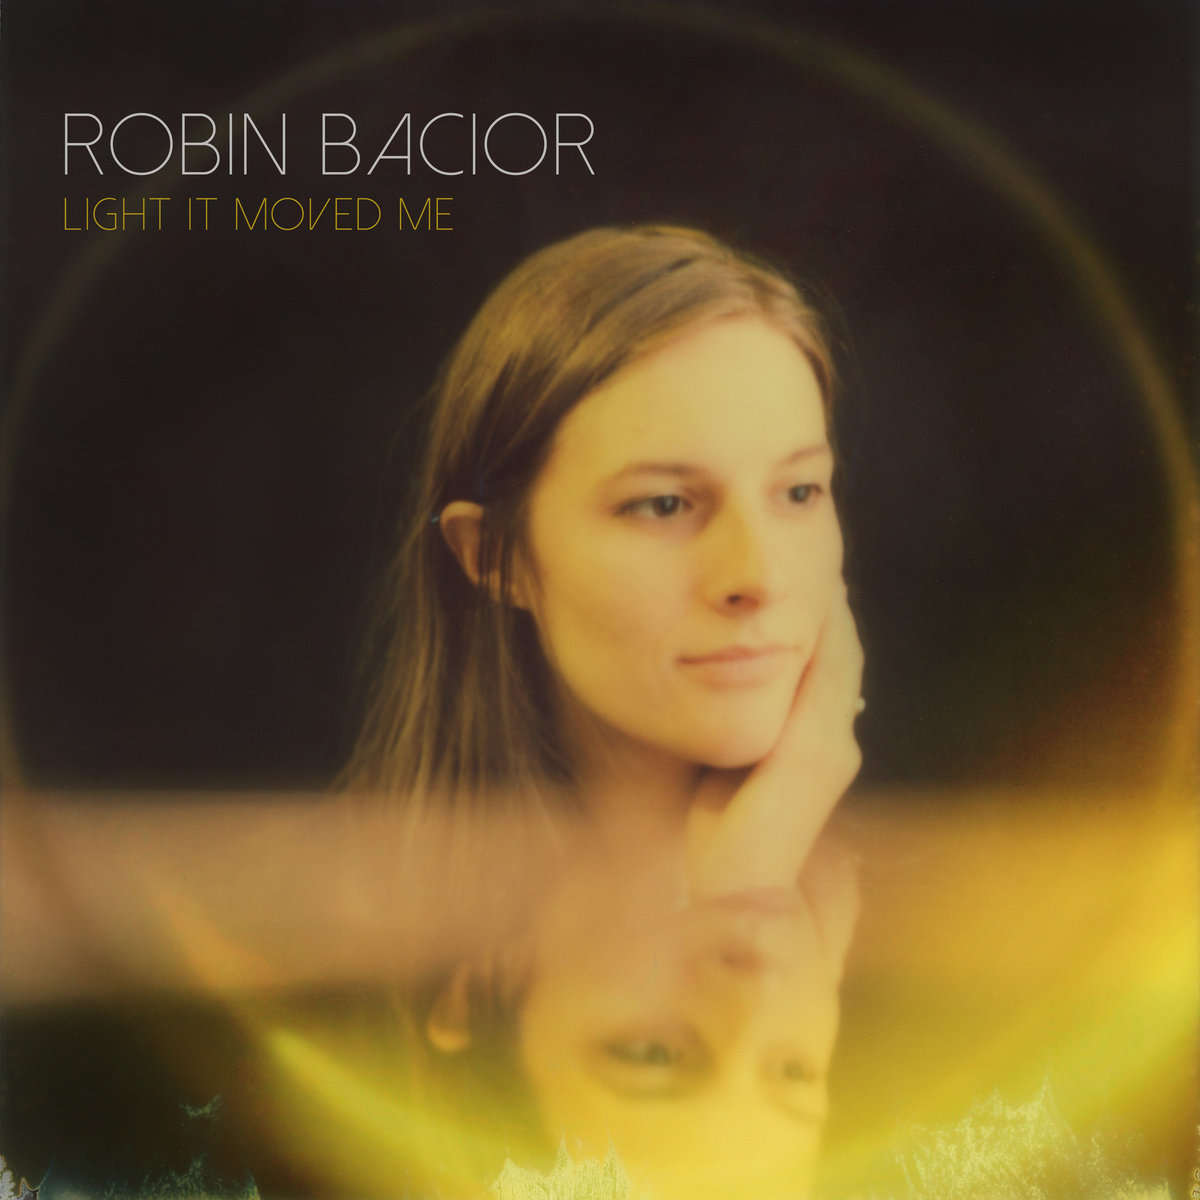 Resultado de imagen para robin bacior – light it moved me